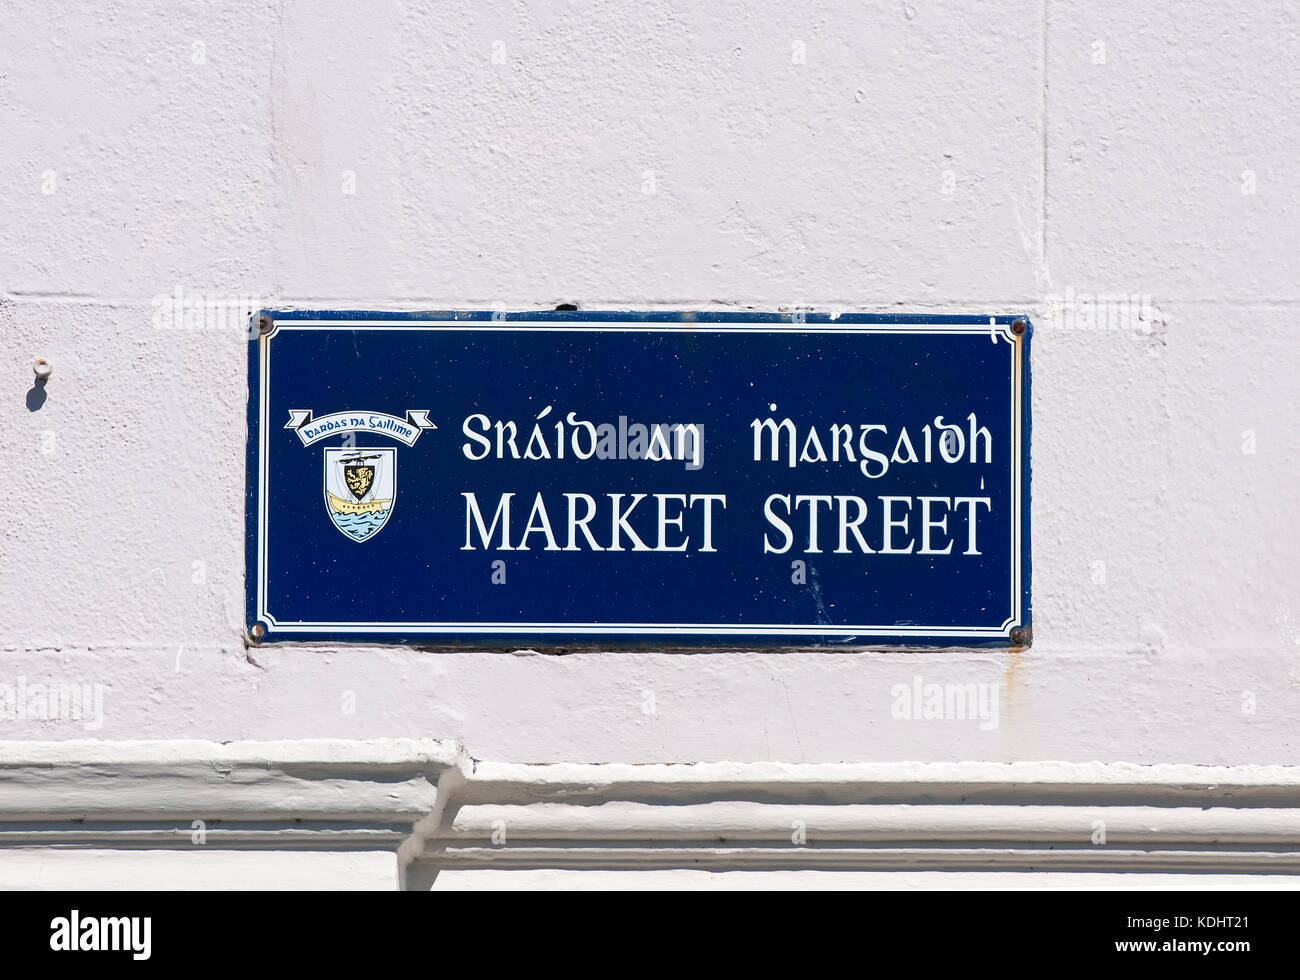 Street sign in Galway, County Galway, Ireland - Stock Image